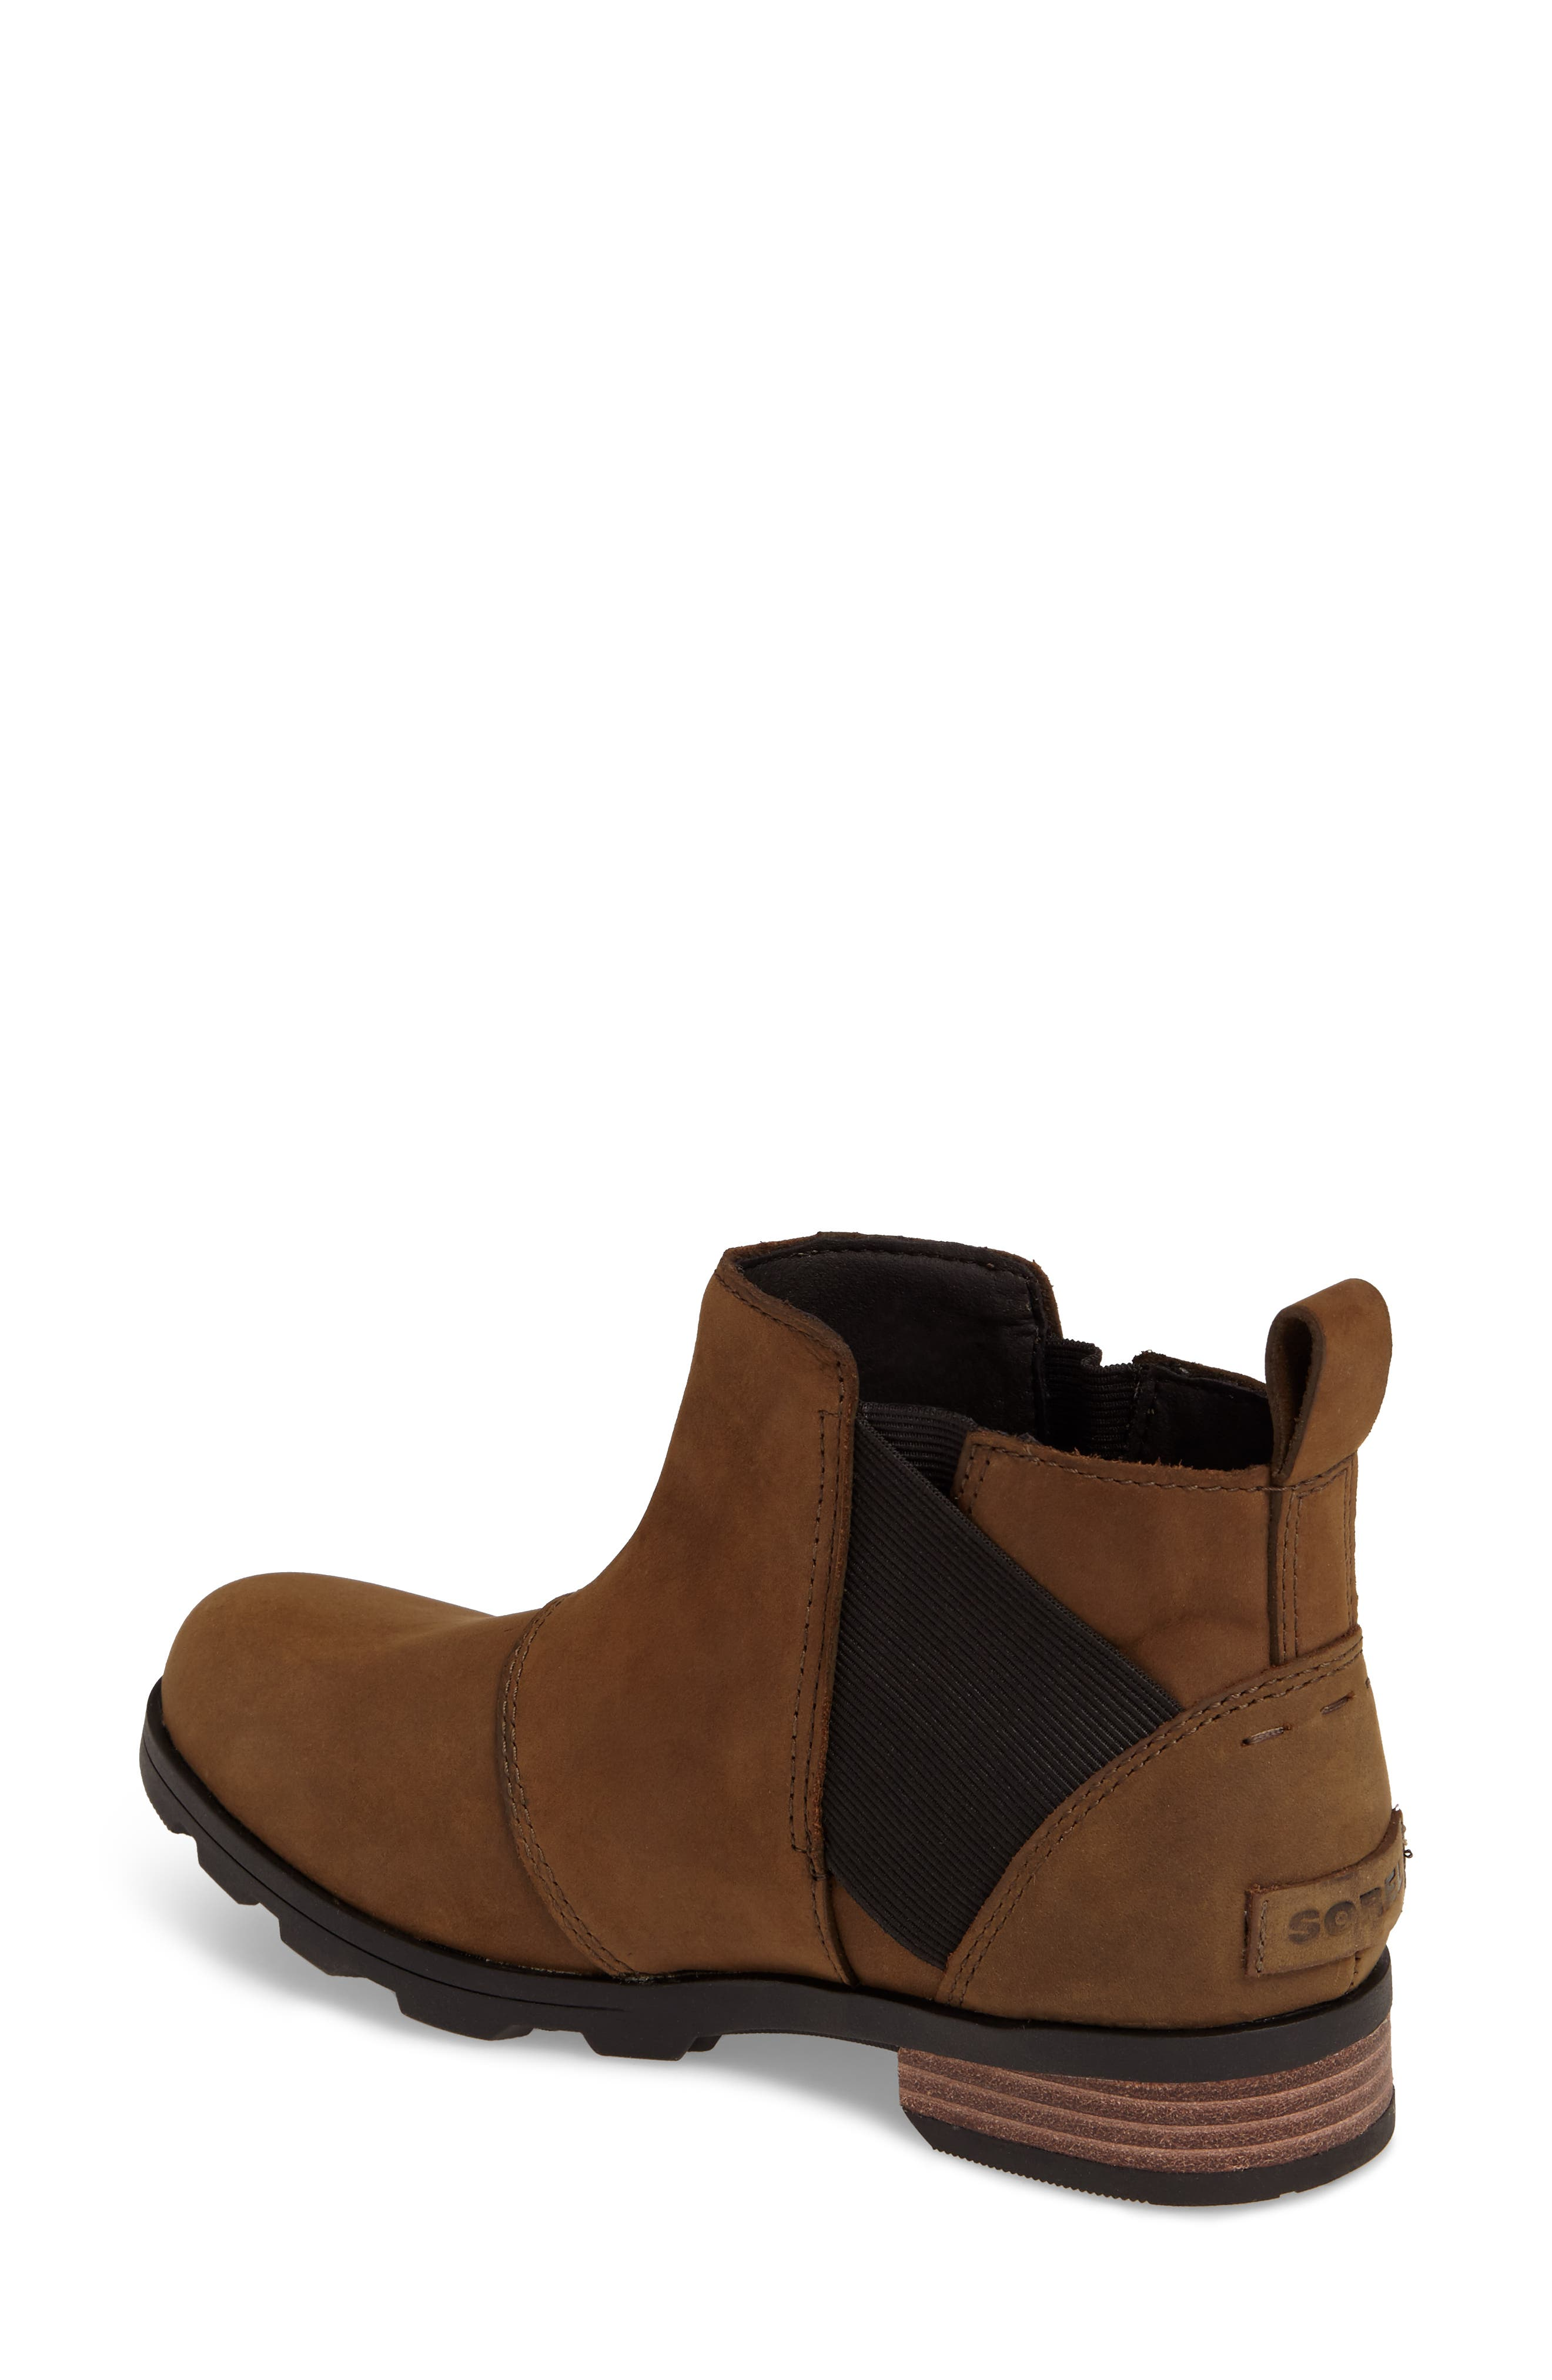 Alternate Image 2  - Sorel Emelie Waterproof Chelsea Boot (Women)